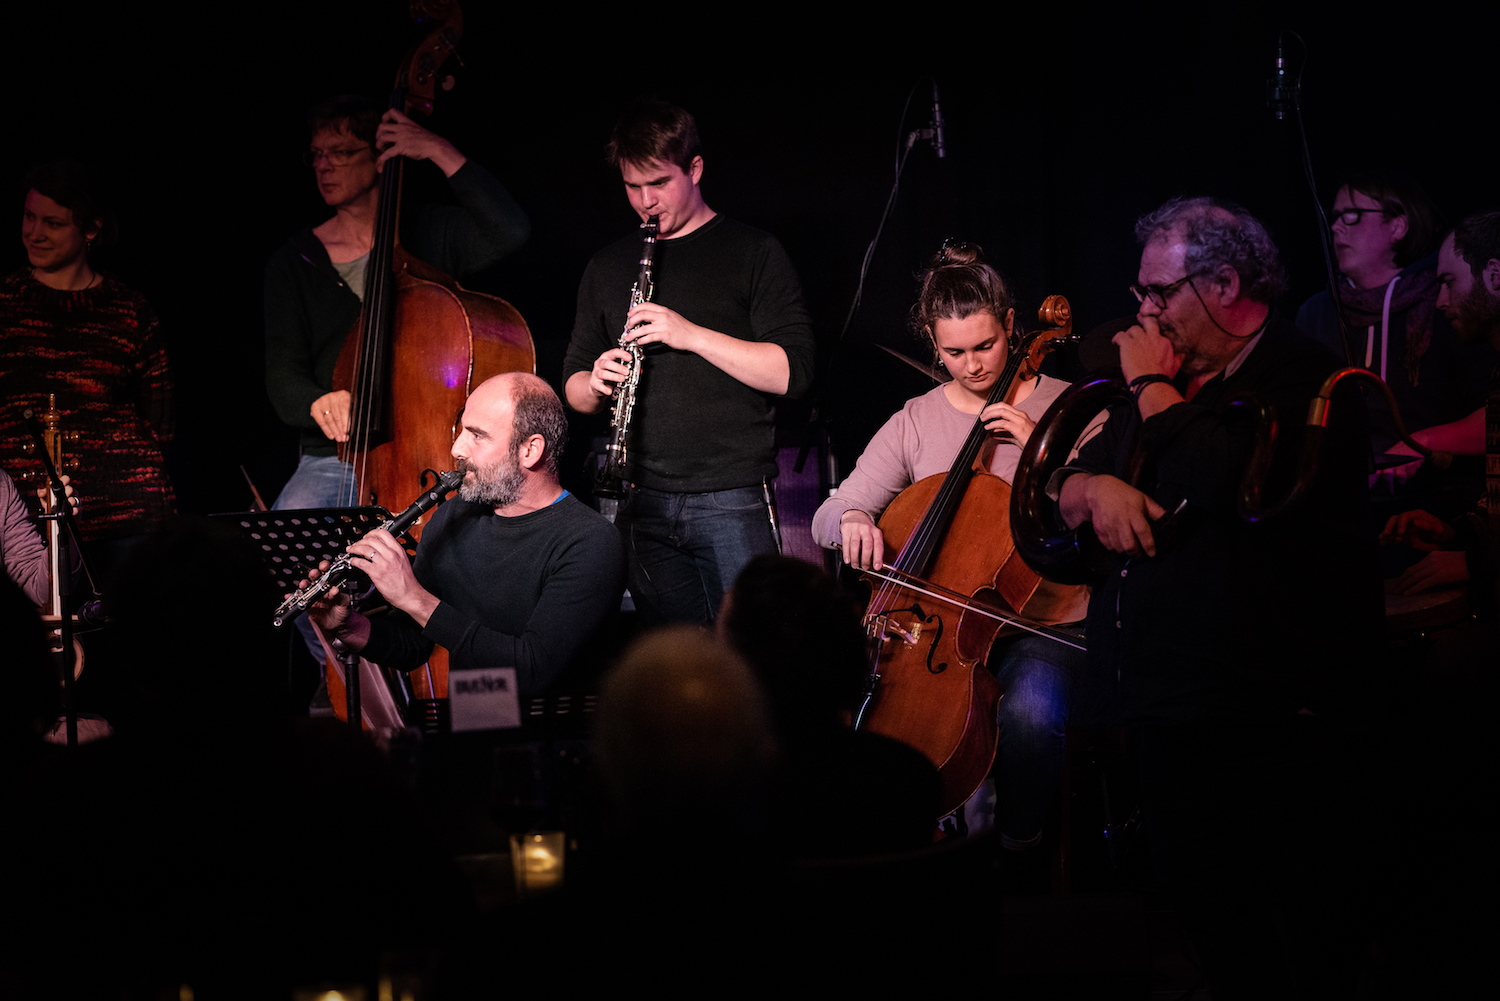 Jam Session at Blue Note with Kinan Azmeh & Michel Godard © Liudmila Jeremies